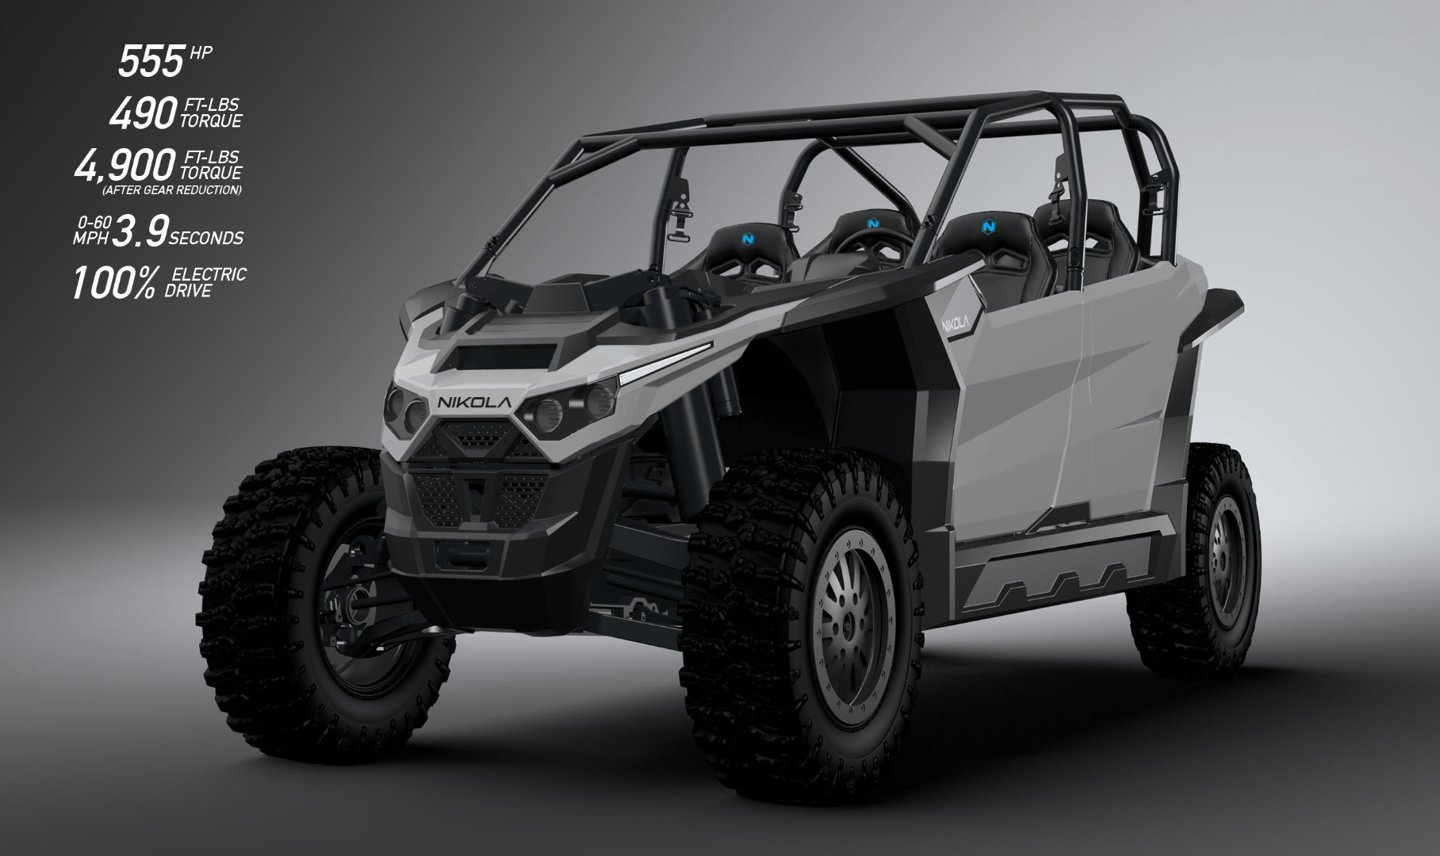 555-hp Nikola electric side-by-side tears through dirt for